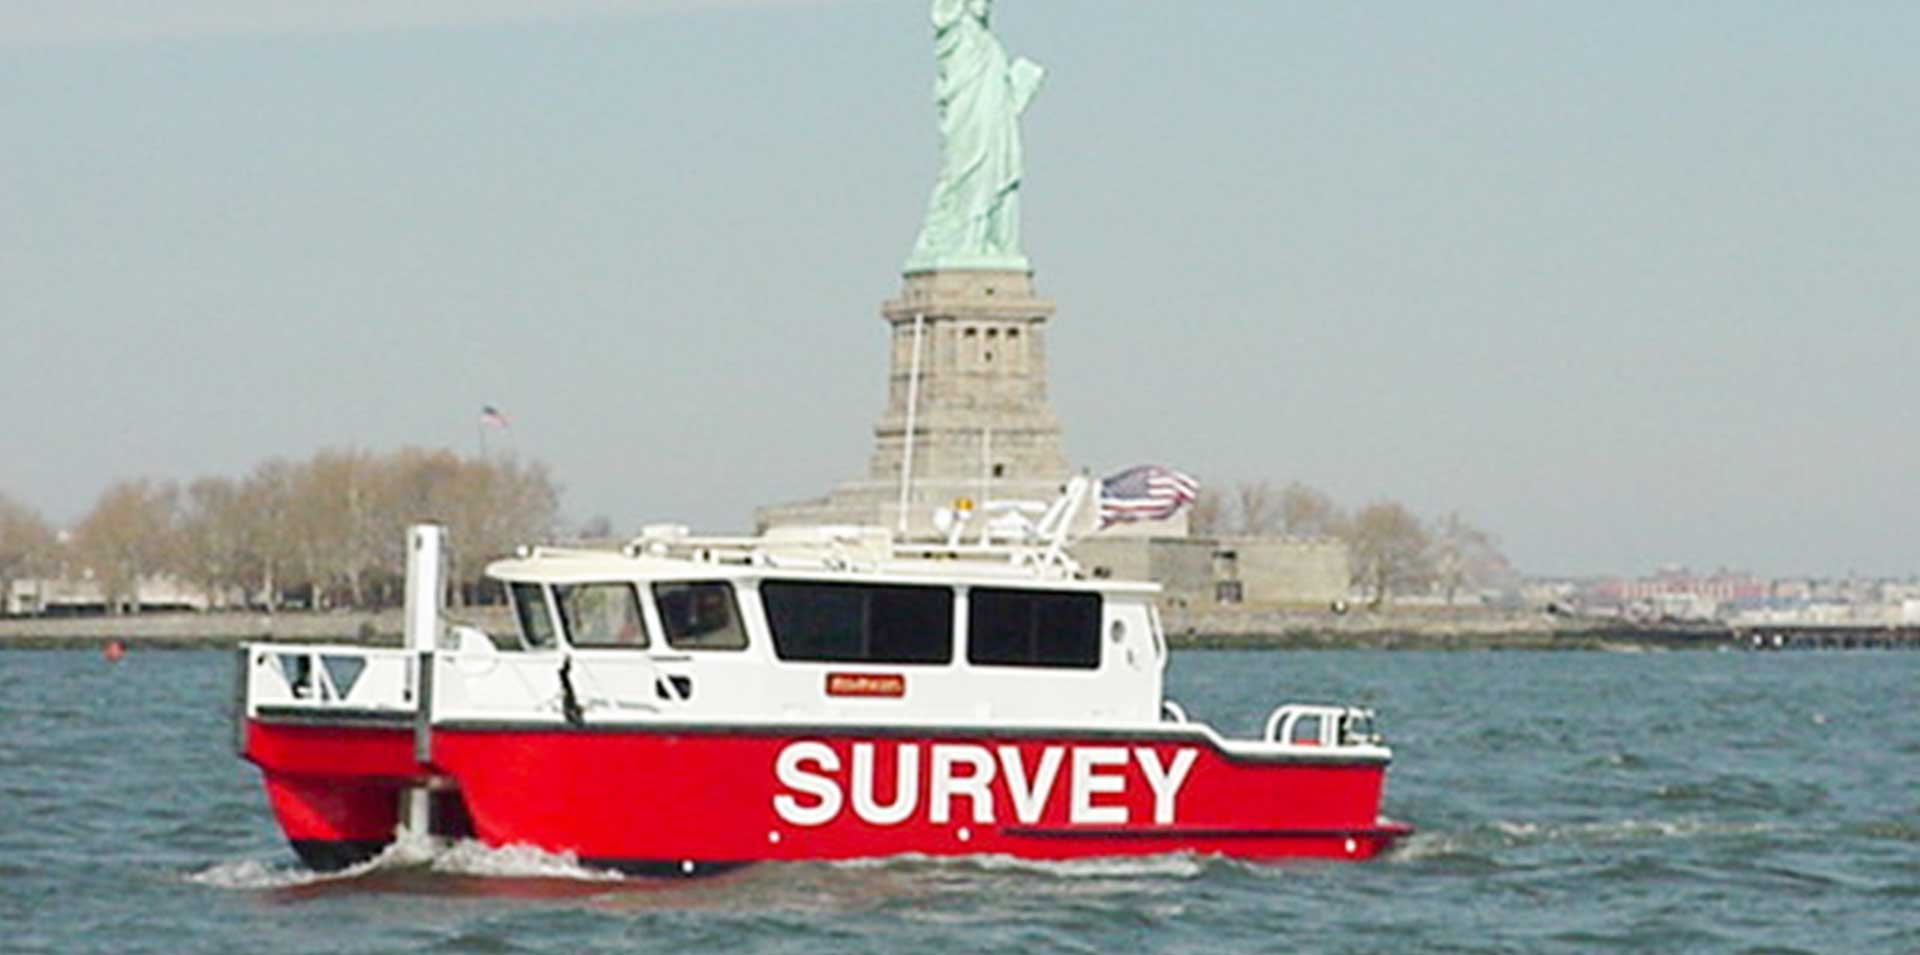 Silver Ships survey boat in front of Statue of Liberty